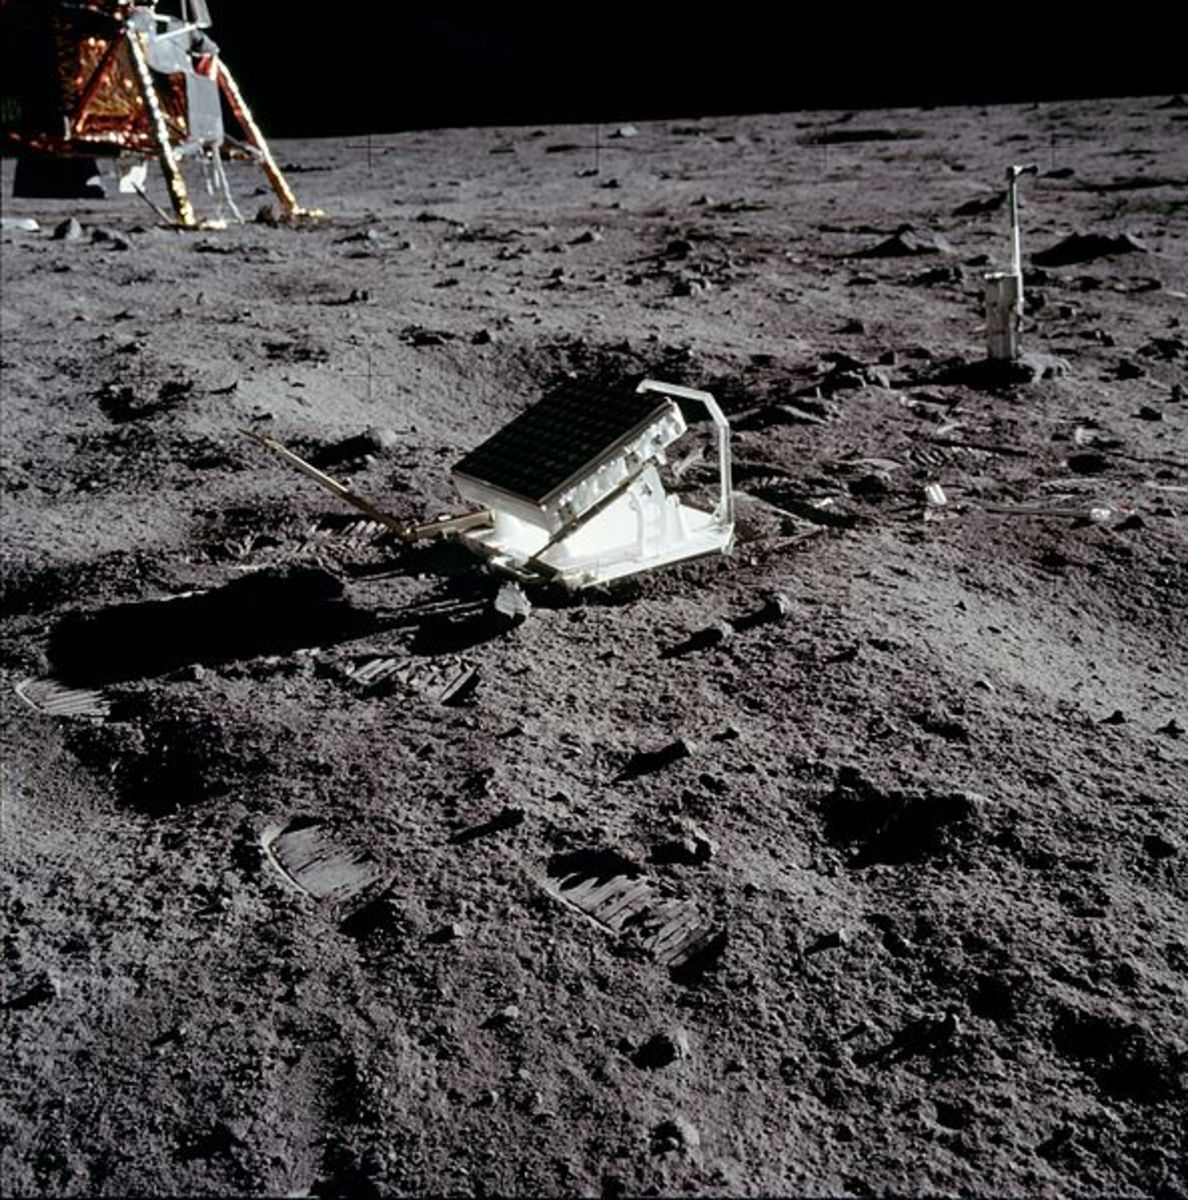 Due to the moon lacking any real weather, evidence of humans like the equipment and footprints pictured here will last millions of years virtually unchanged.